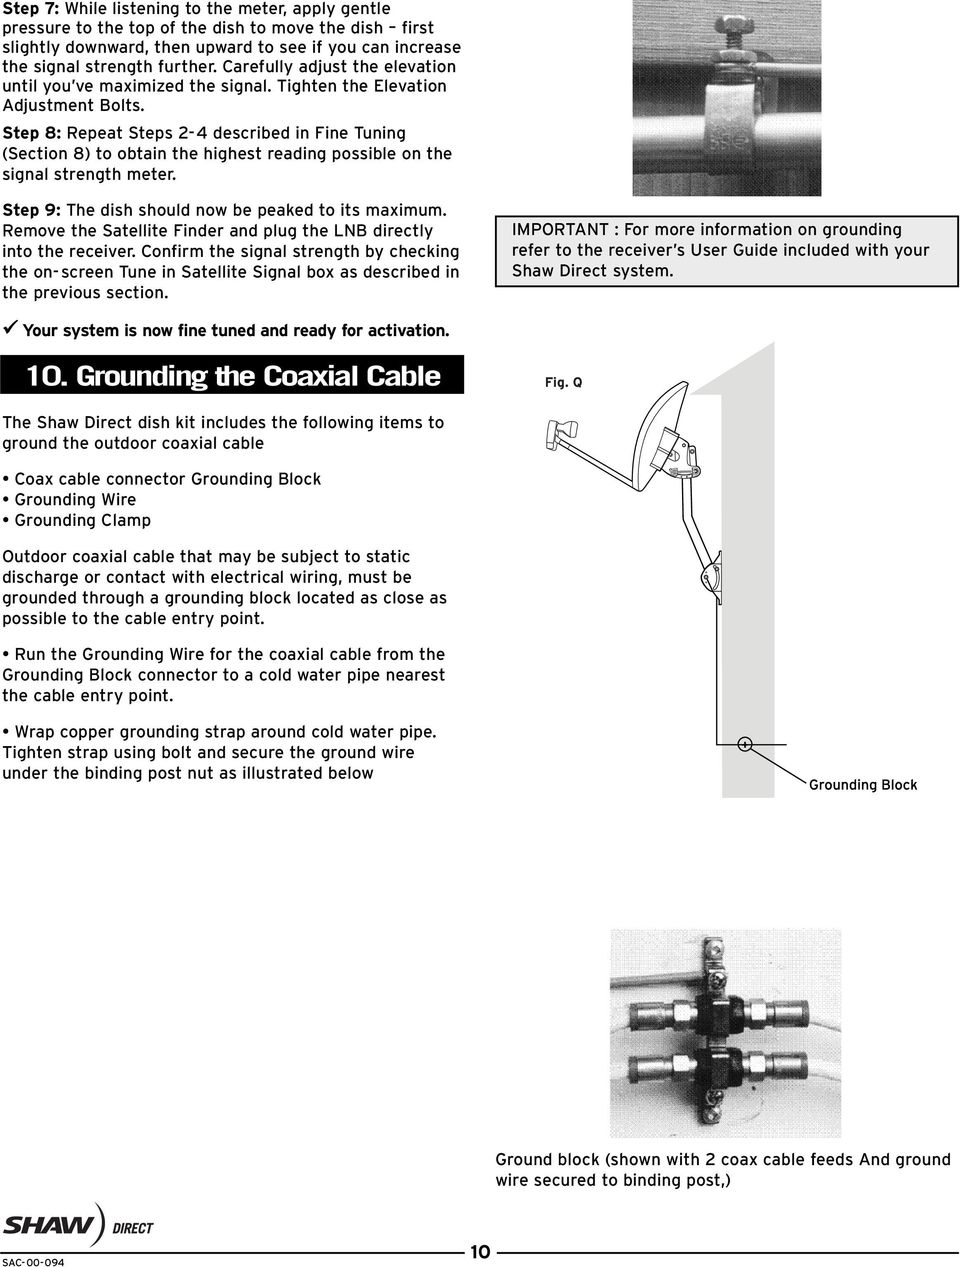 Shaw Box Wiring Diagrams Dual Satellite Installation Manual Pdf Step 8 Repeat Steps 2 4 Described In Fine Tuning Section